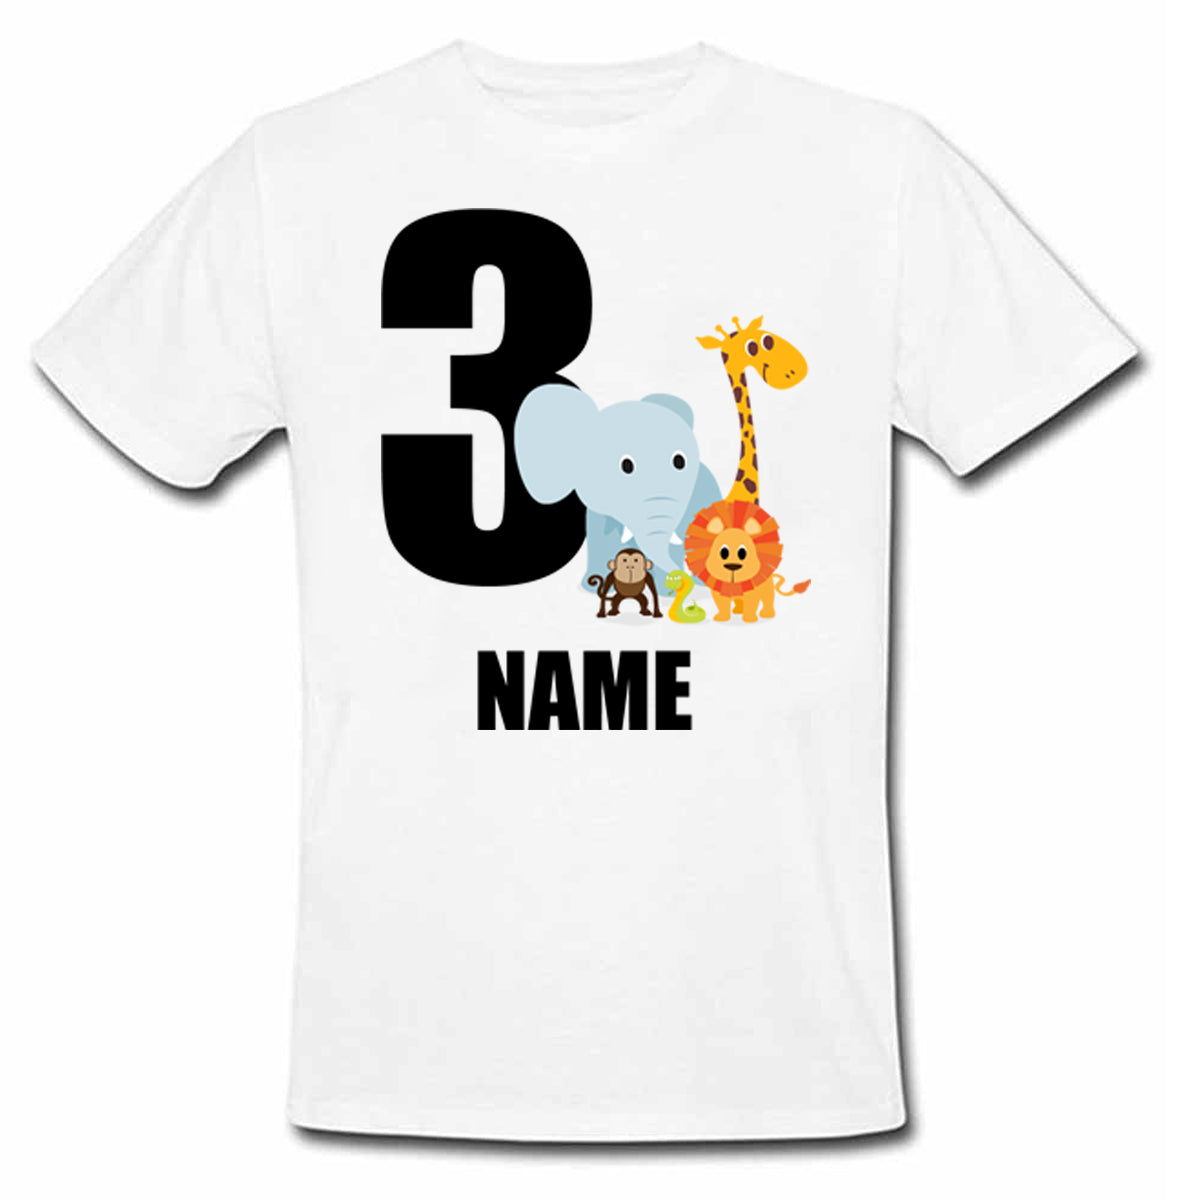 Sprinklecart Personalized Name and Age Printed Safari Animal 3rd Birthday Kids Poly-Cotton T Shirt (White)